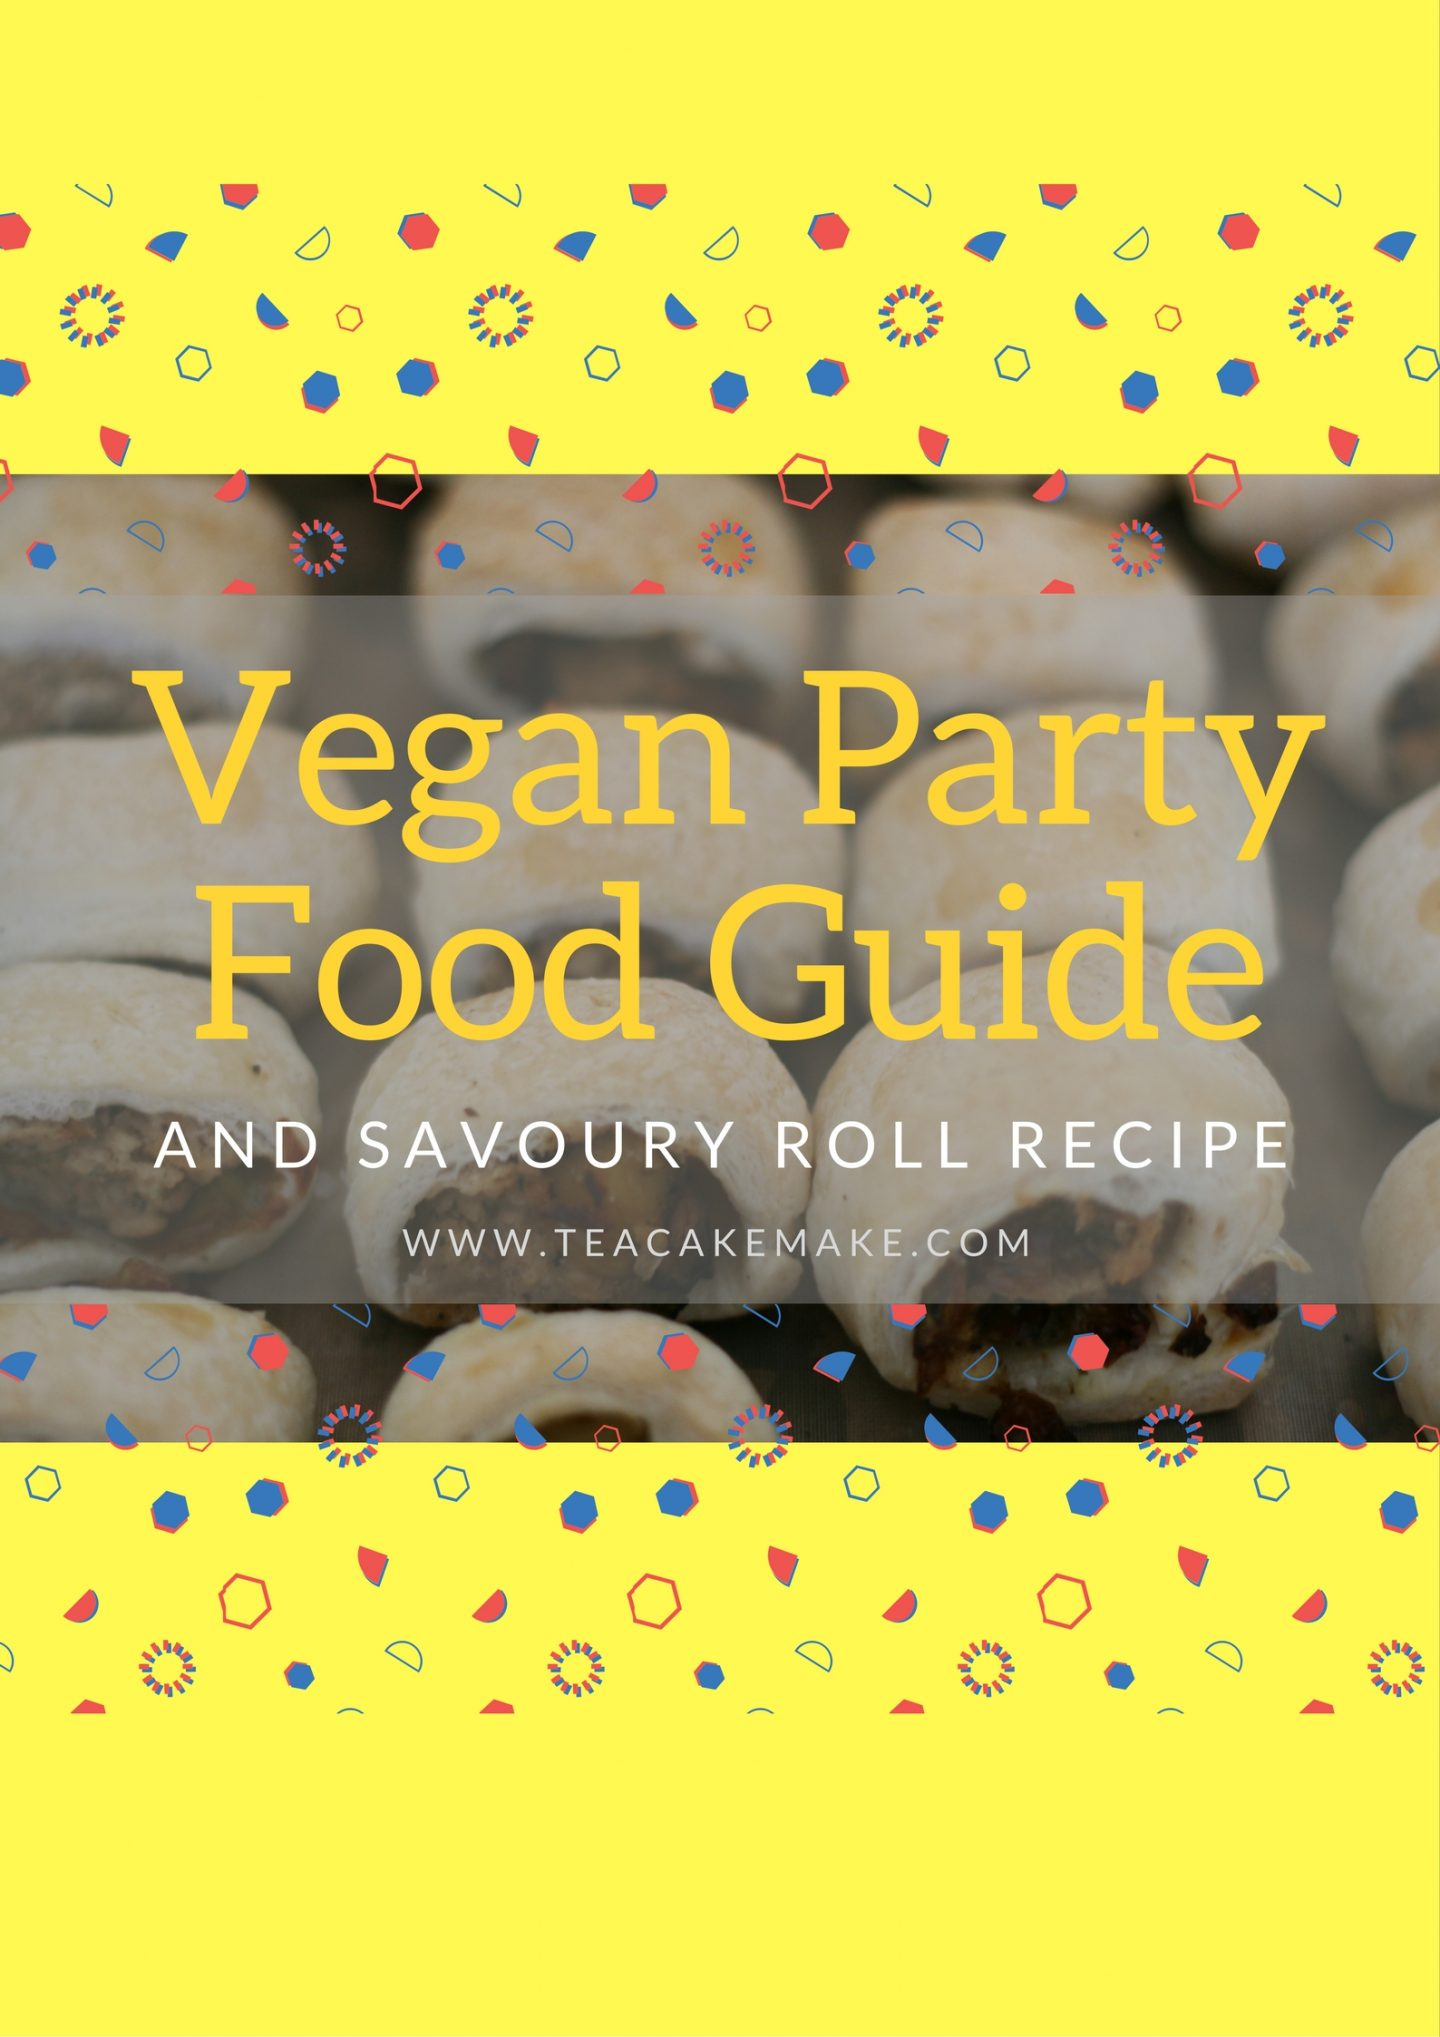 Vegan Party Food Guide